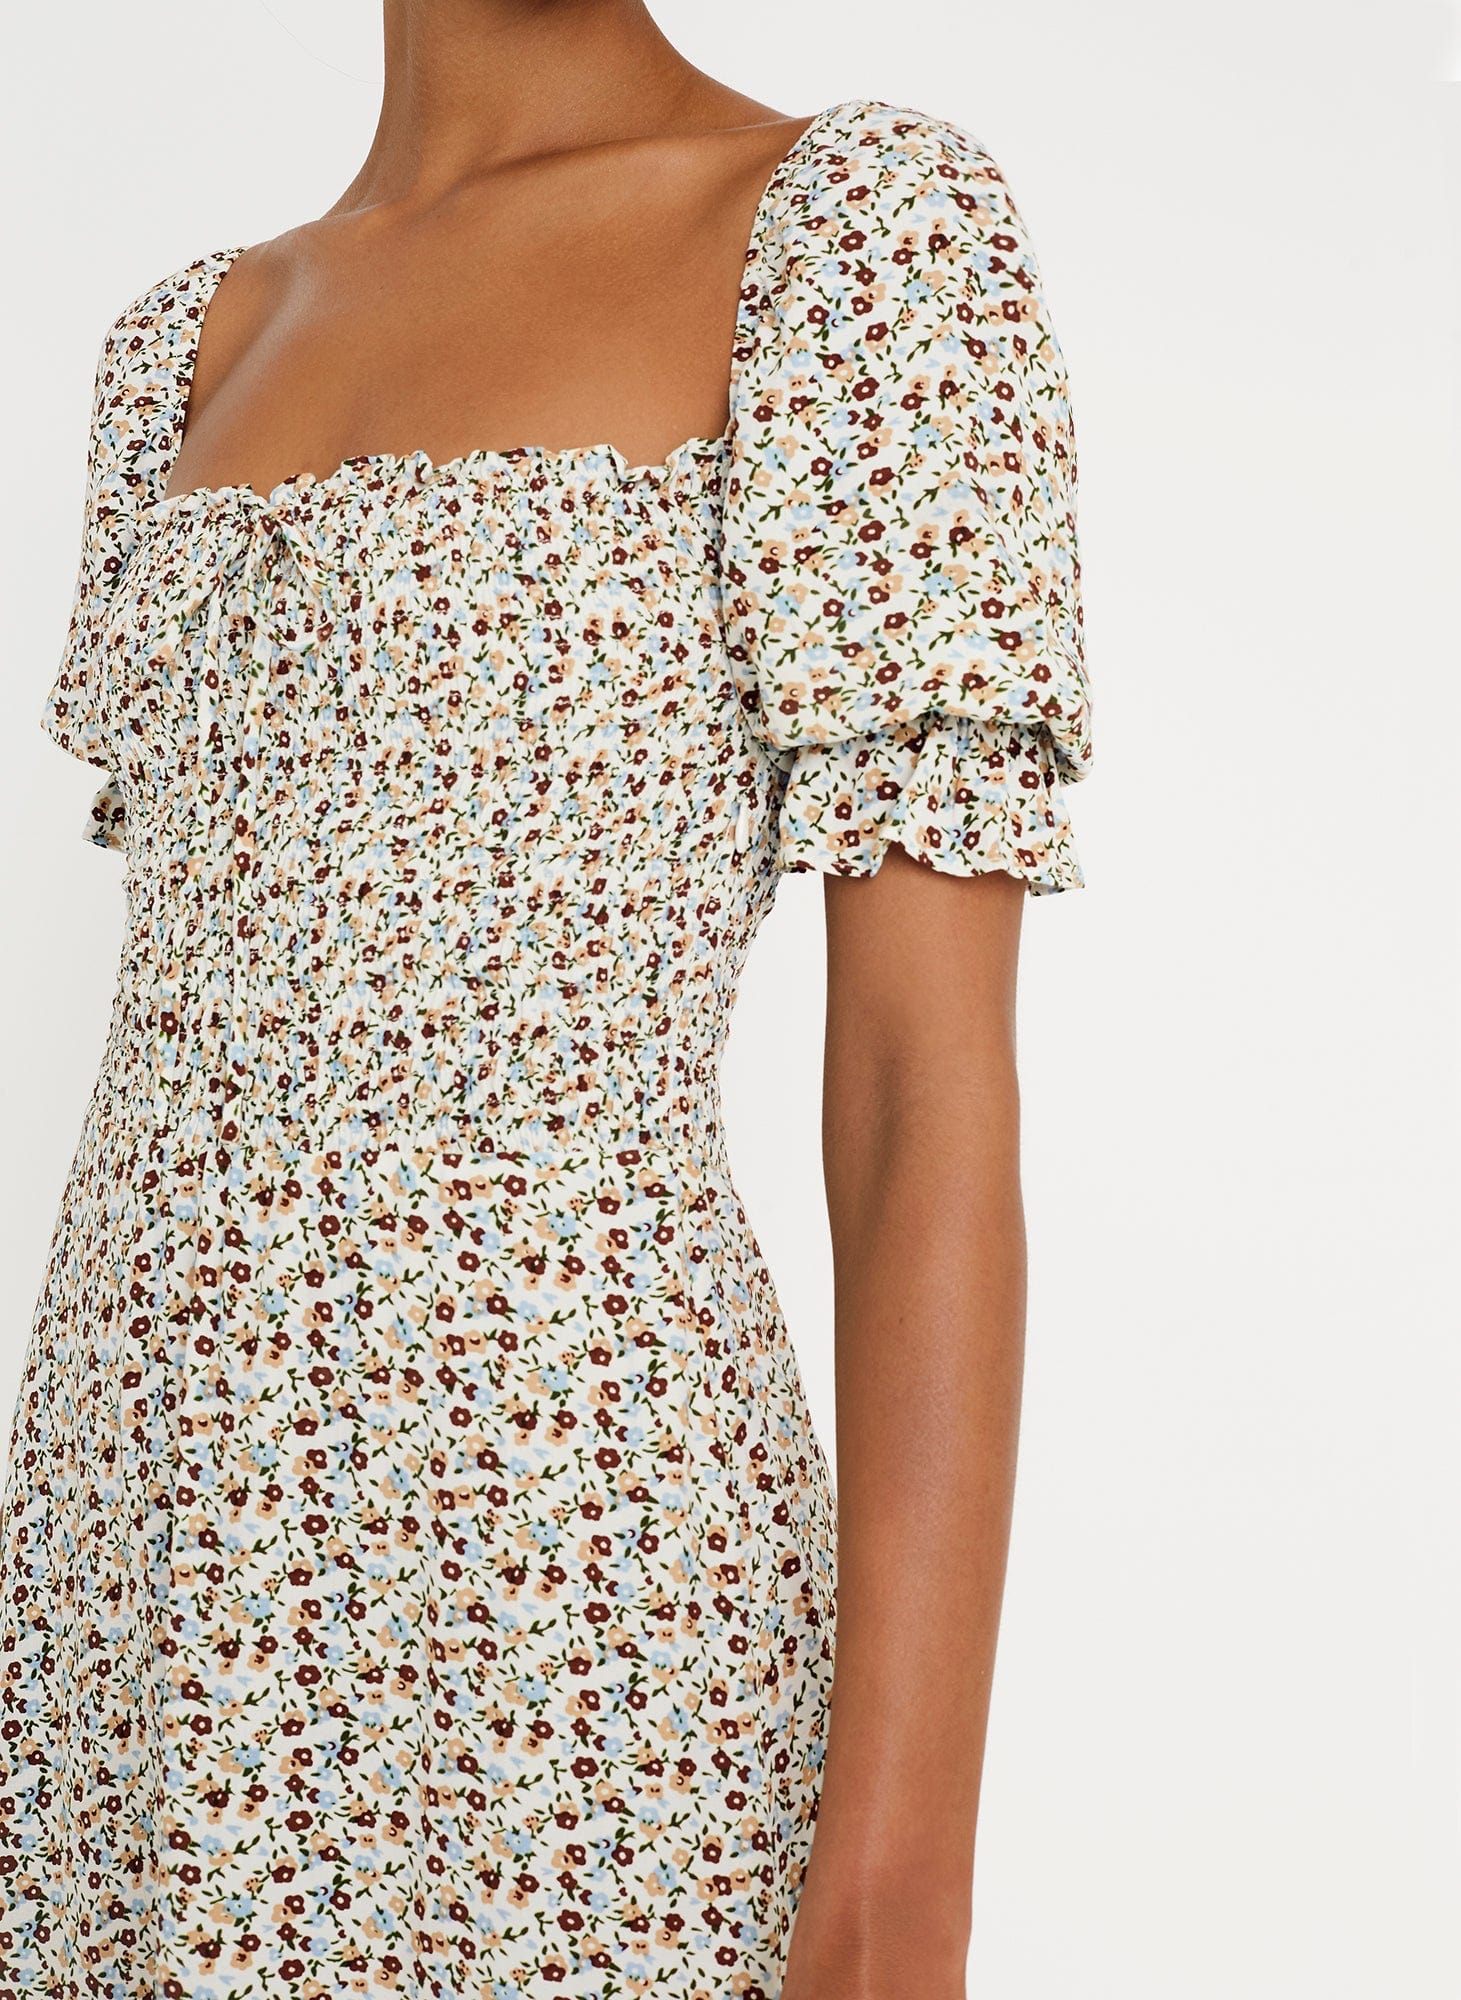 AURELIA FLORAL PRINT - OFF WHITE / CHESTNUT - BELDHI DRESS